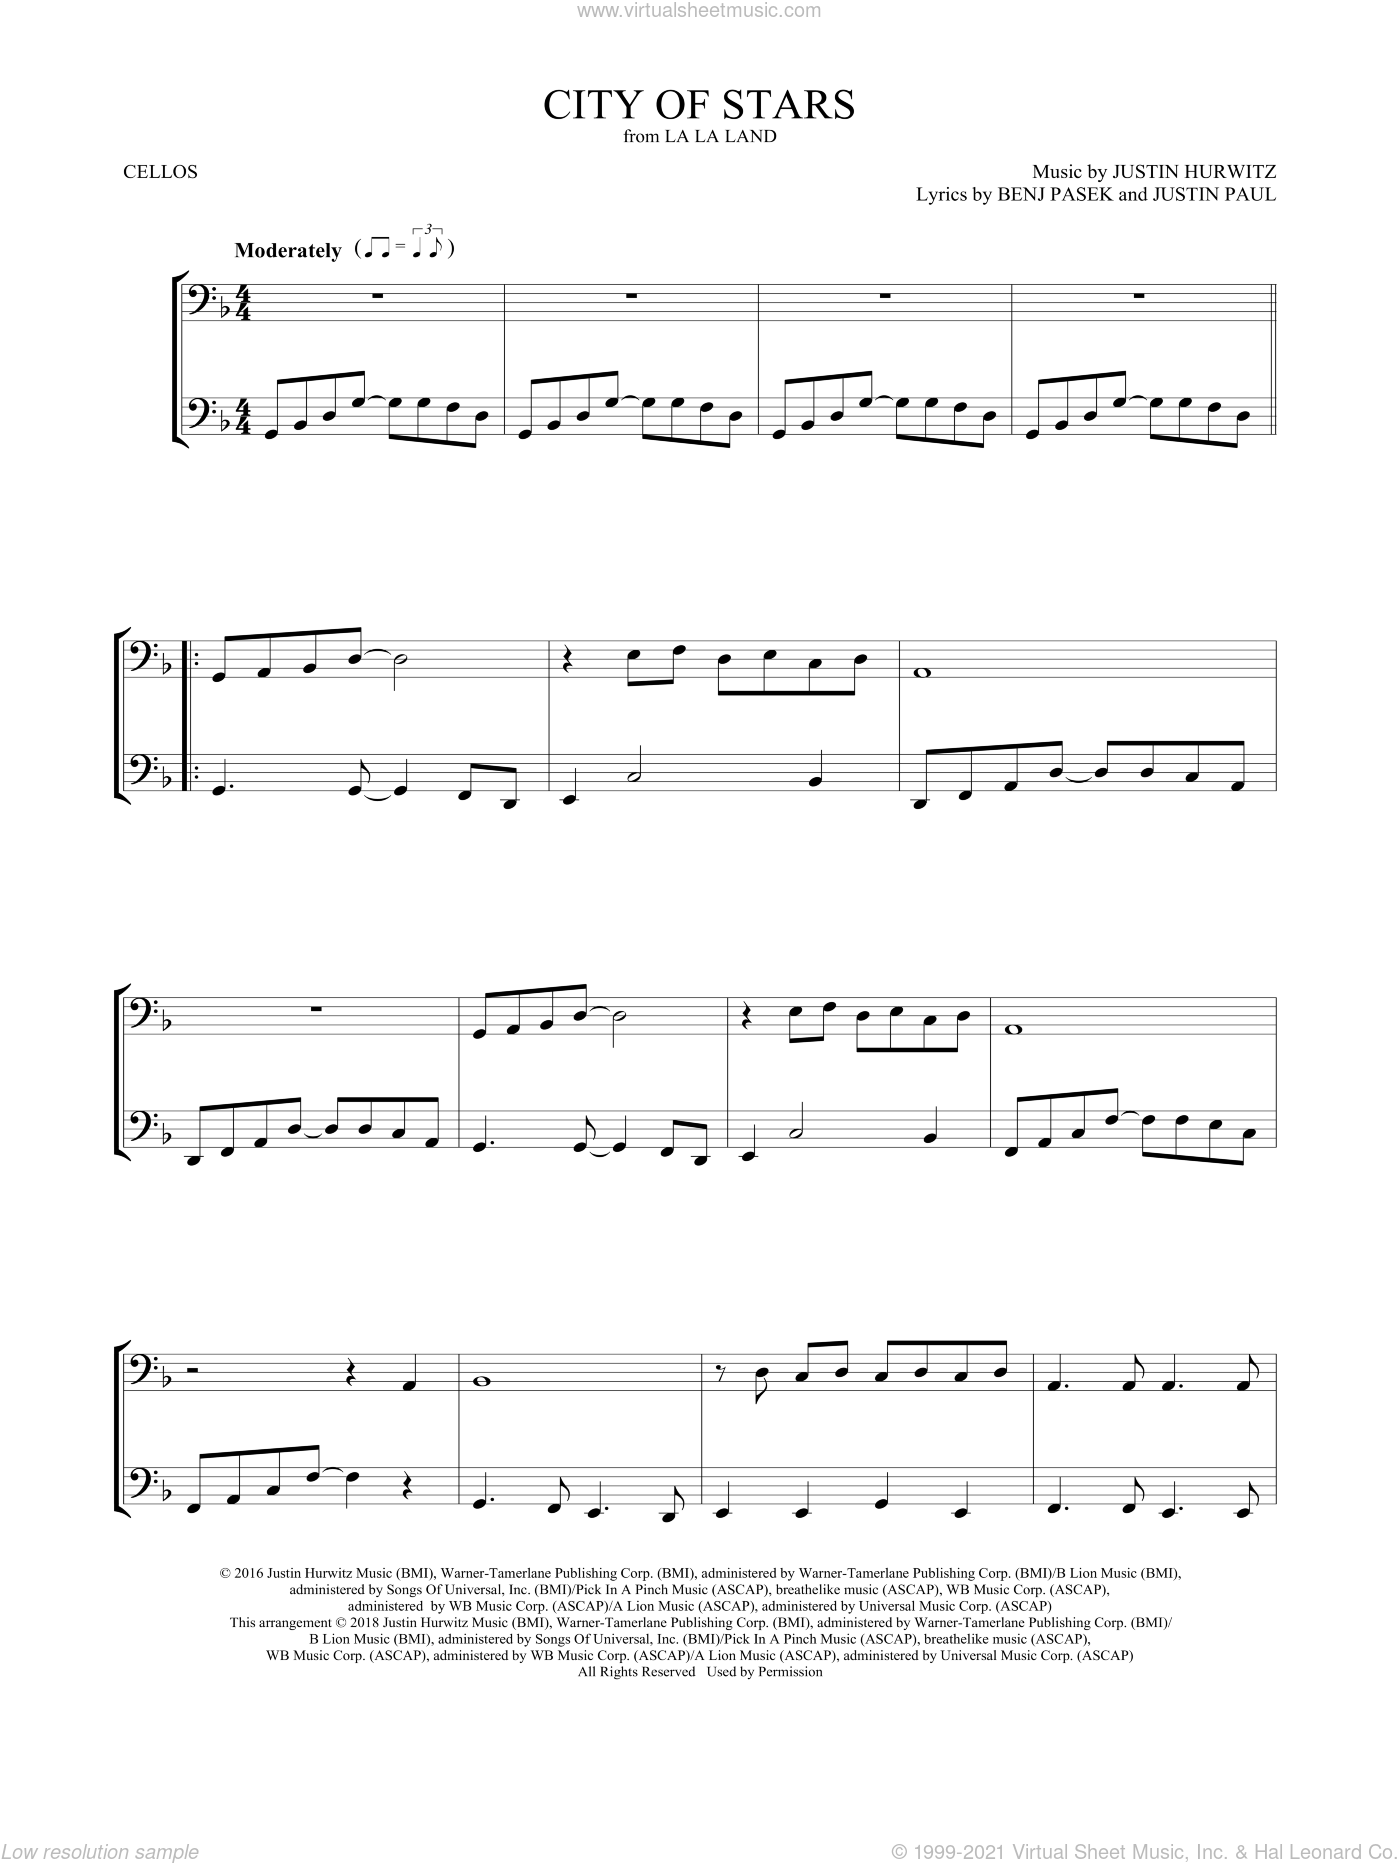 City of Stars (from La La Land) sheet music for two cellos (duet, duets) by Ryan Gosling & Emma Stone, Mark Phillips, Benj Pasek, Justin Hurwitz and Justin Paul, intermediate skill level